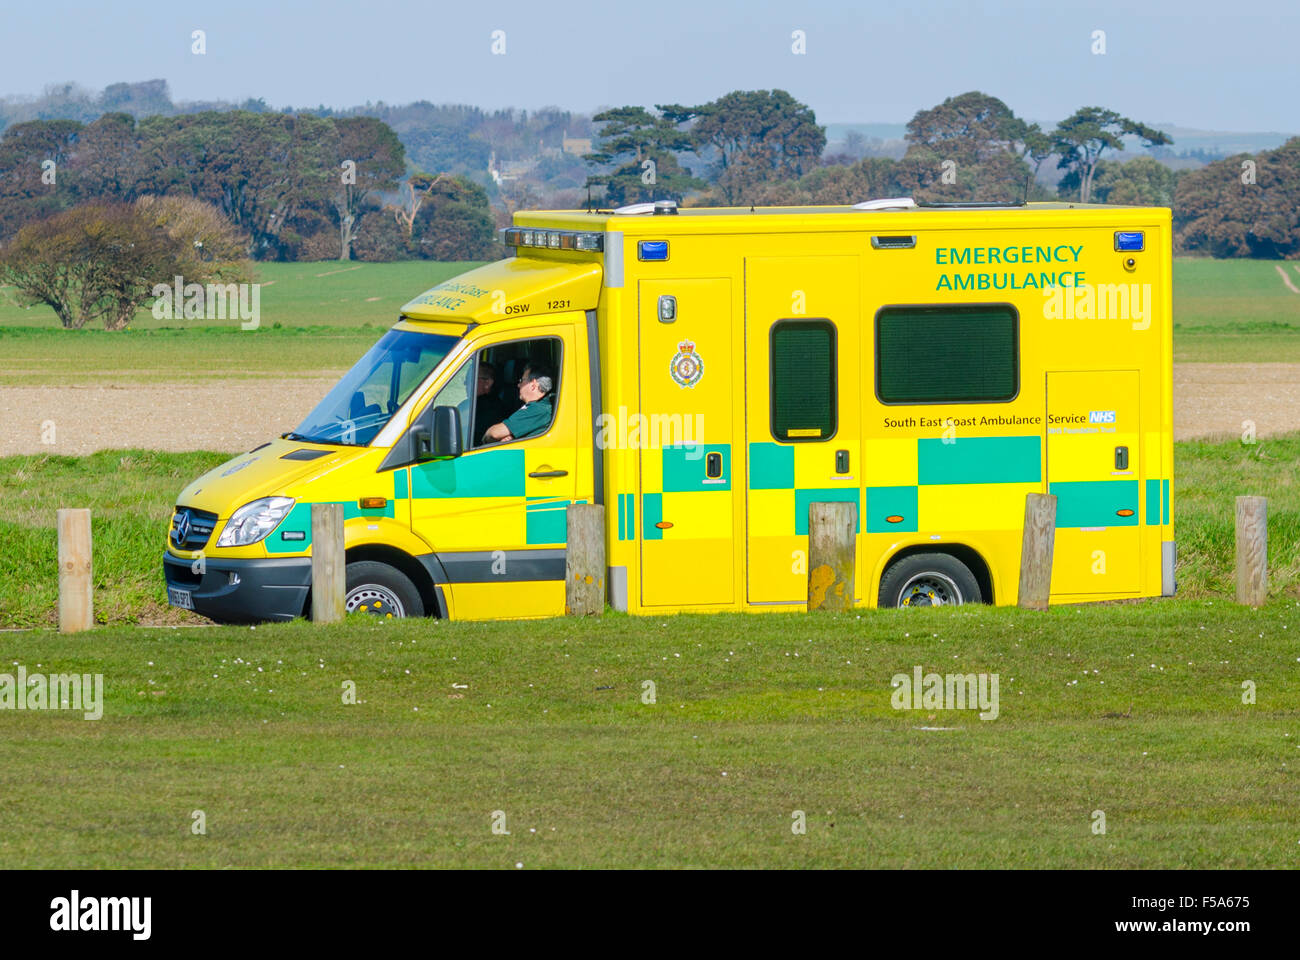 NHS South East Coast Ambulance parked by some grass while the crew take a break., in South East England, UK. - Stock Image